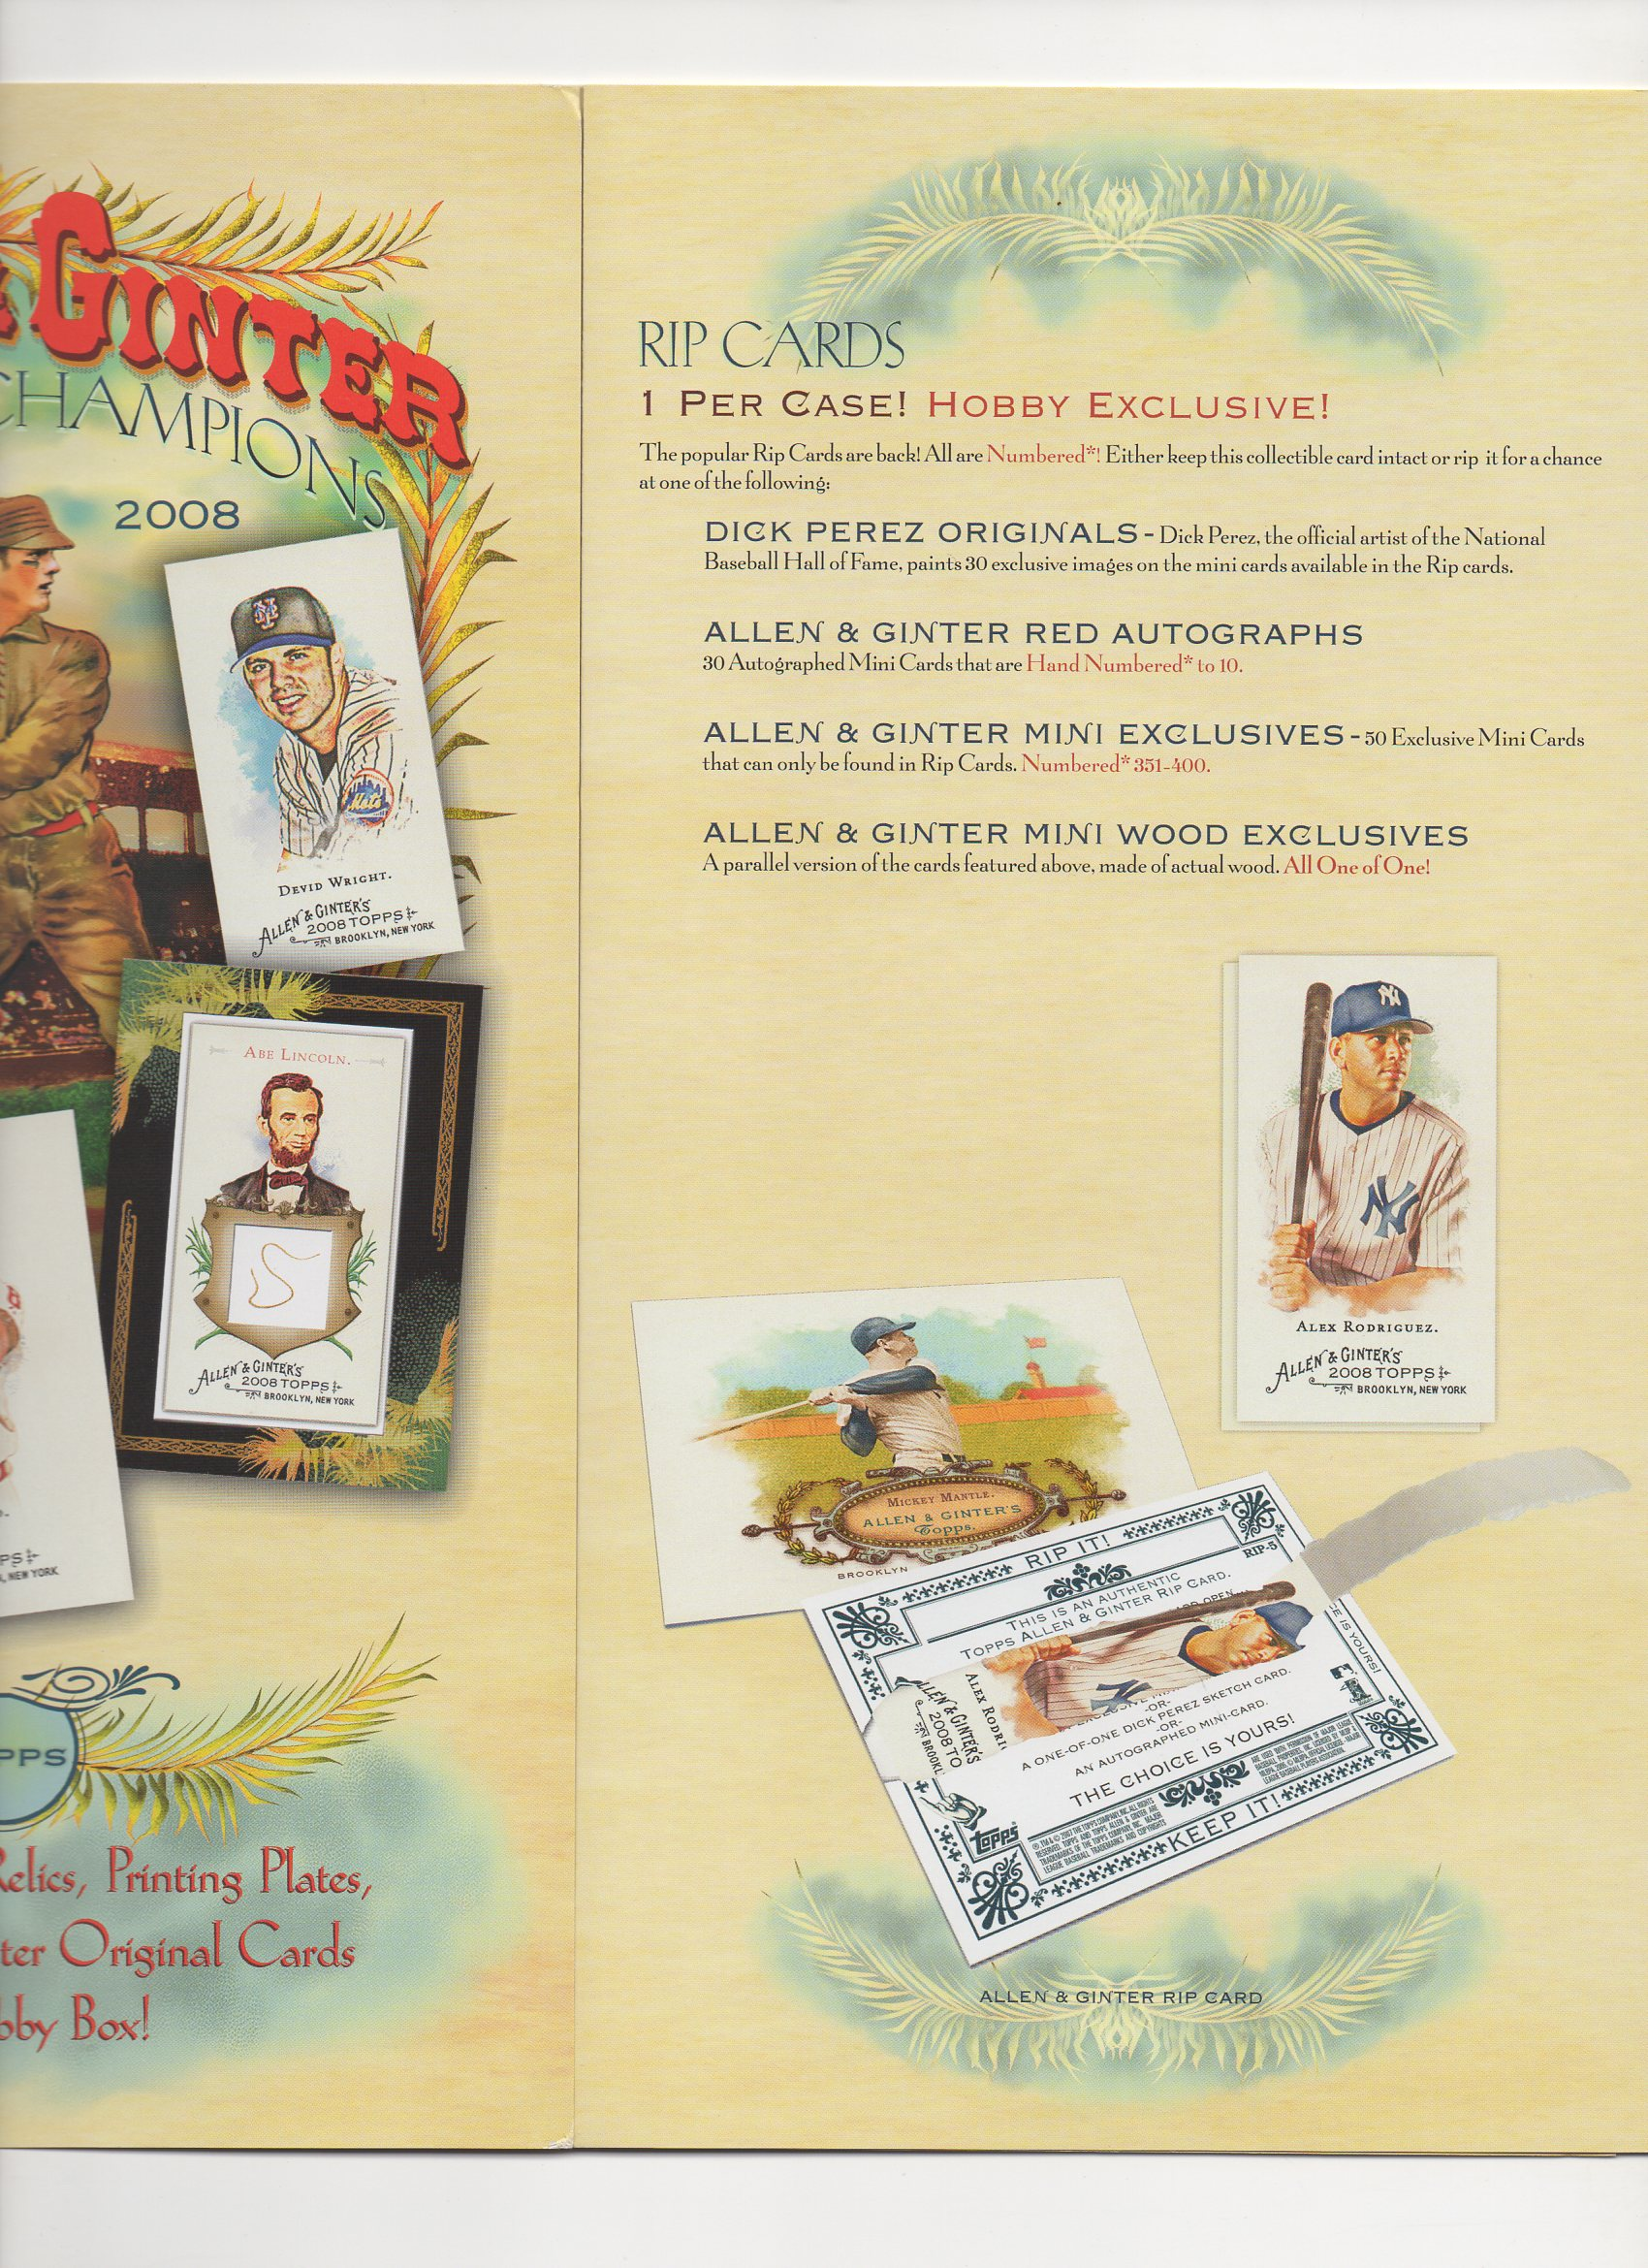 2008 topps 10 page heavy stock foldout